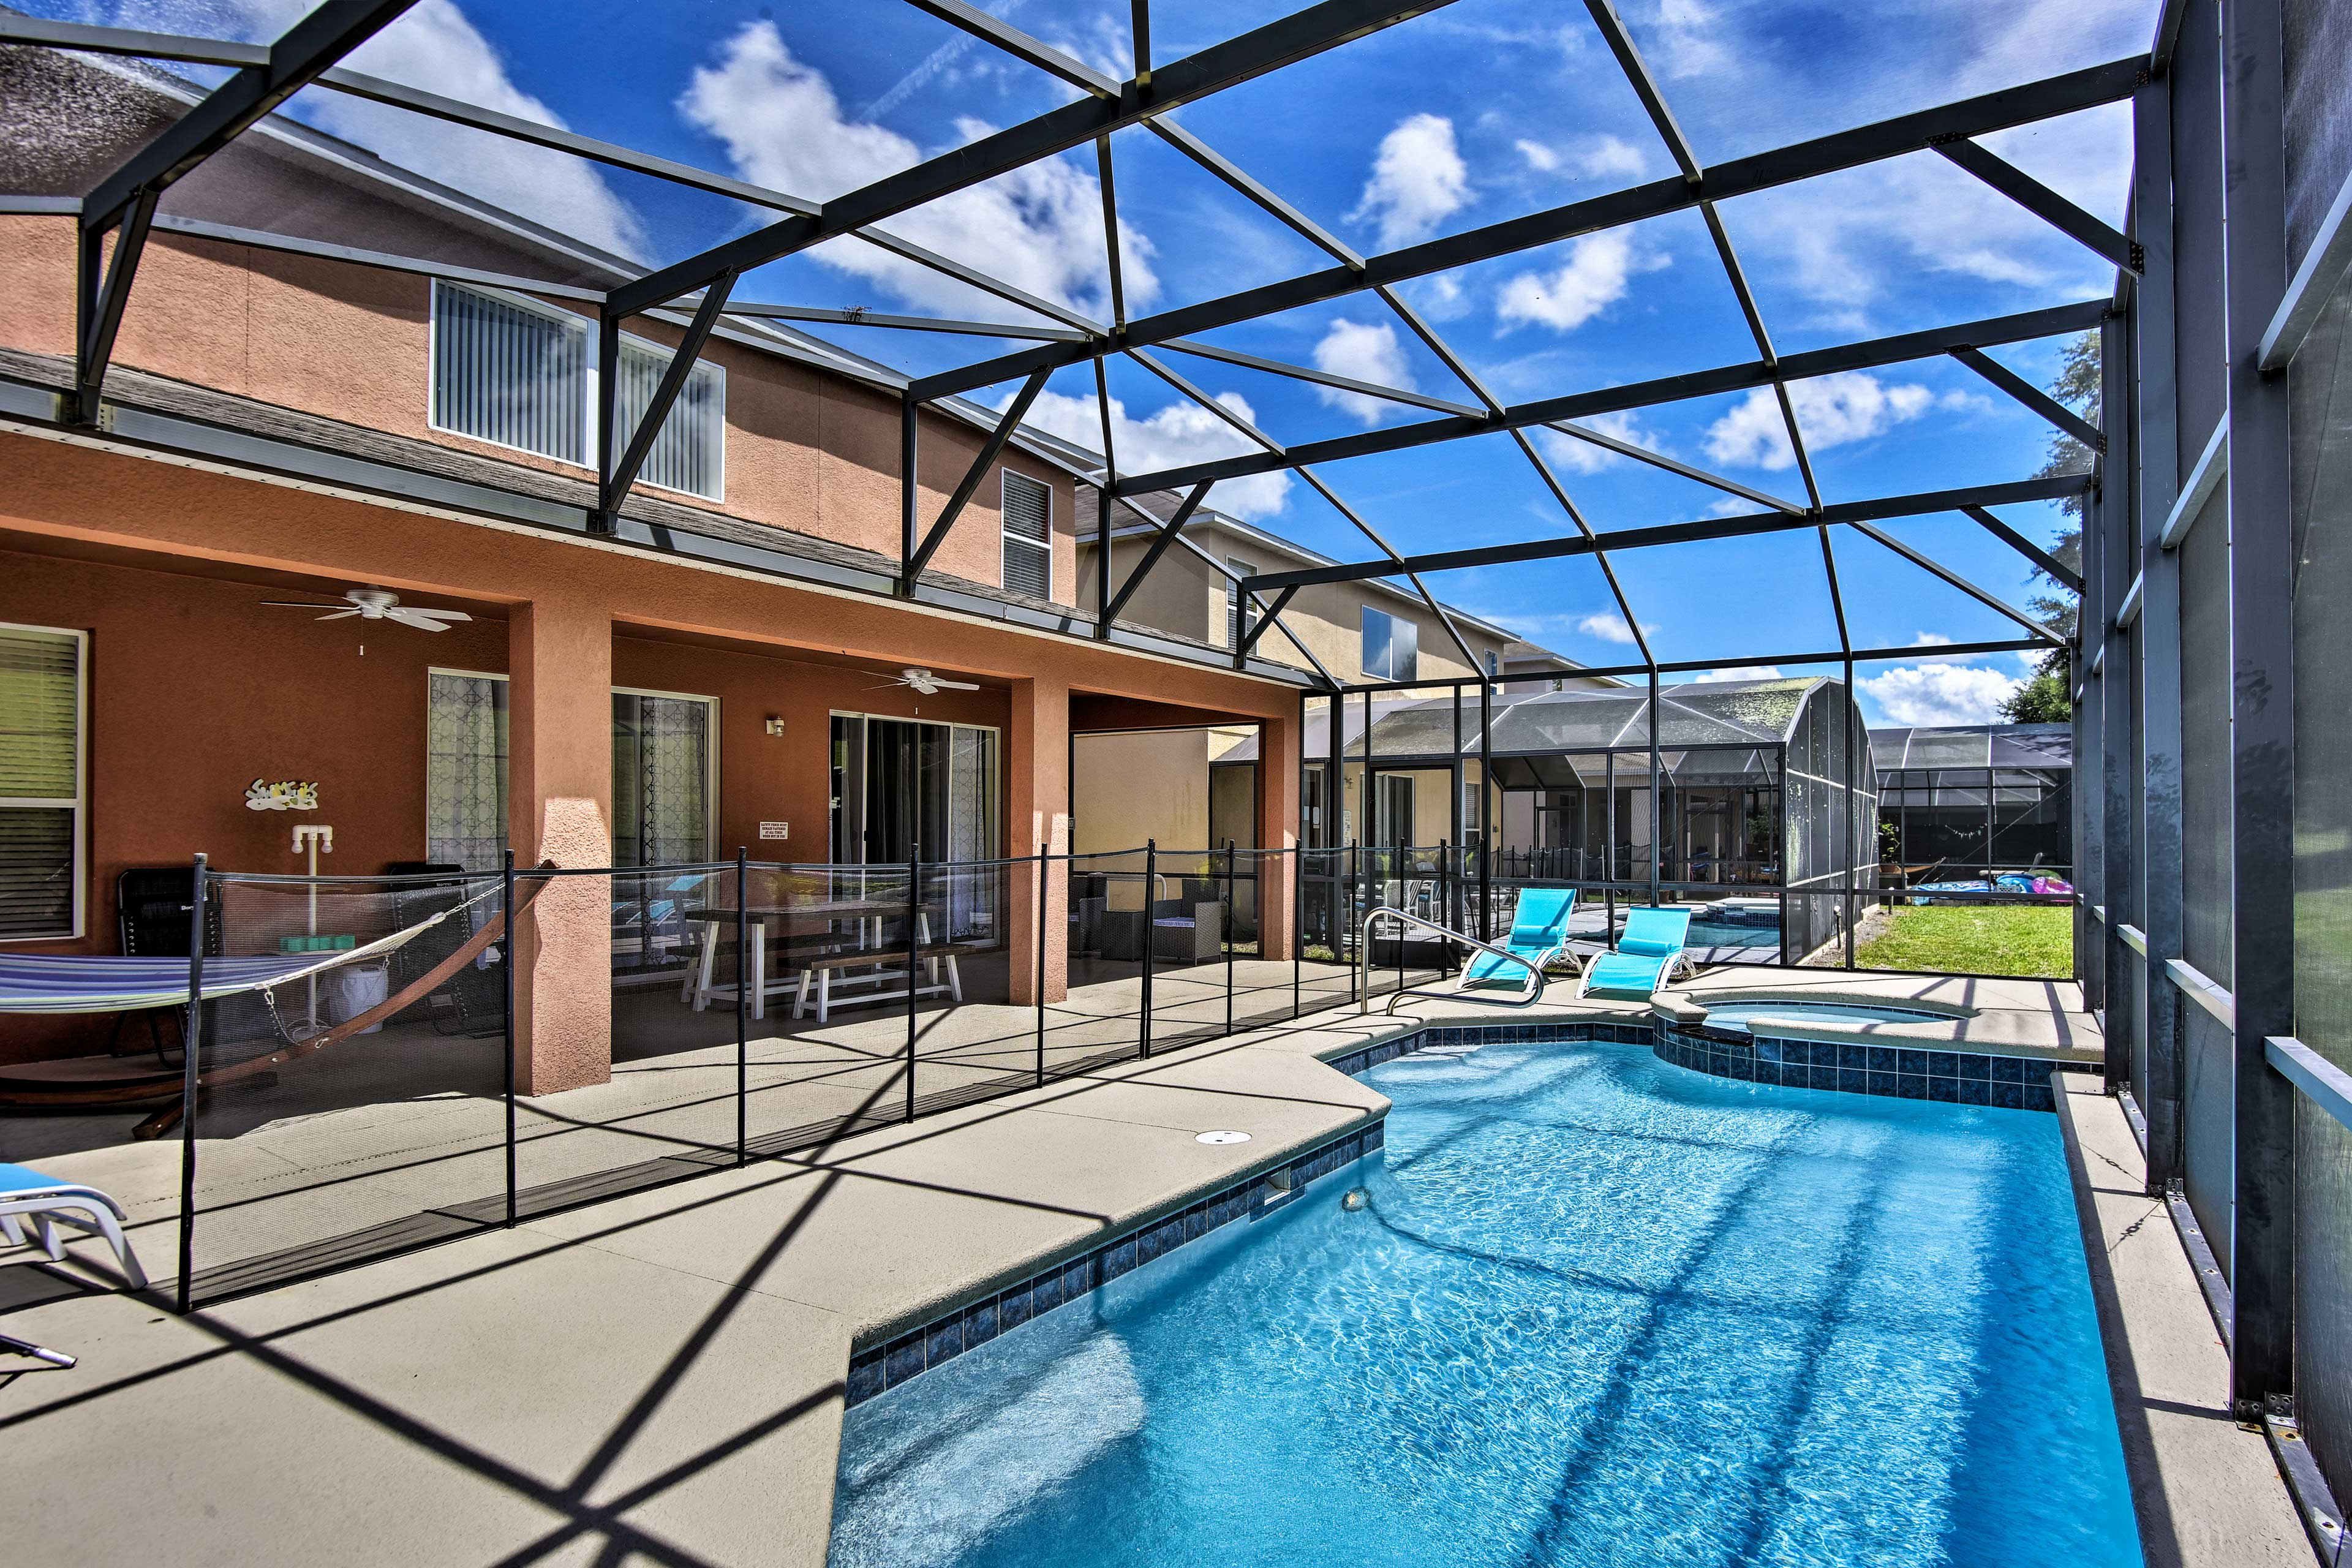 Escape to Kissimmee and stay at this luxurious vacation rental house.